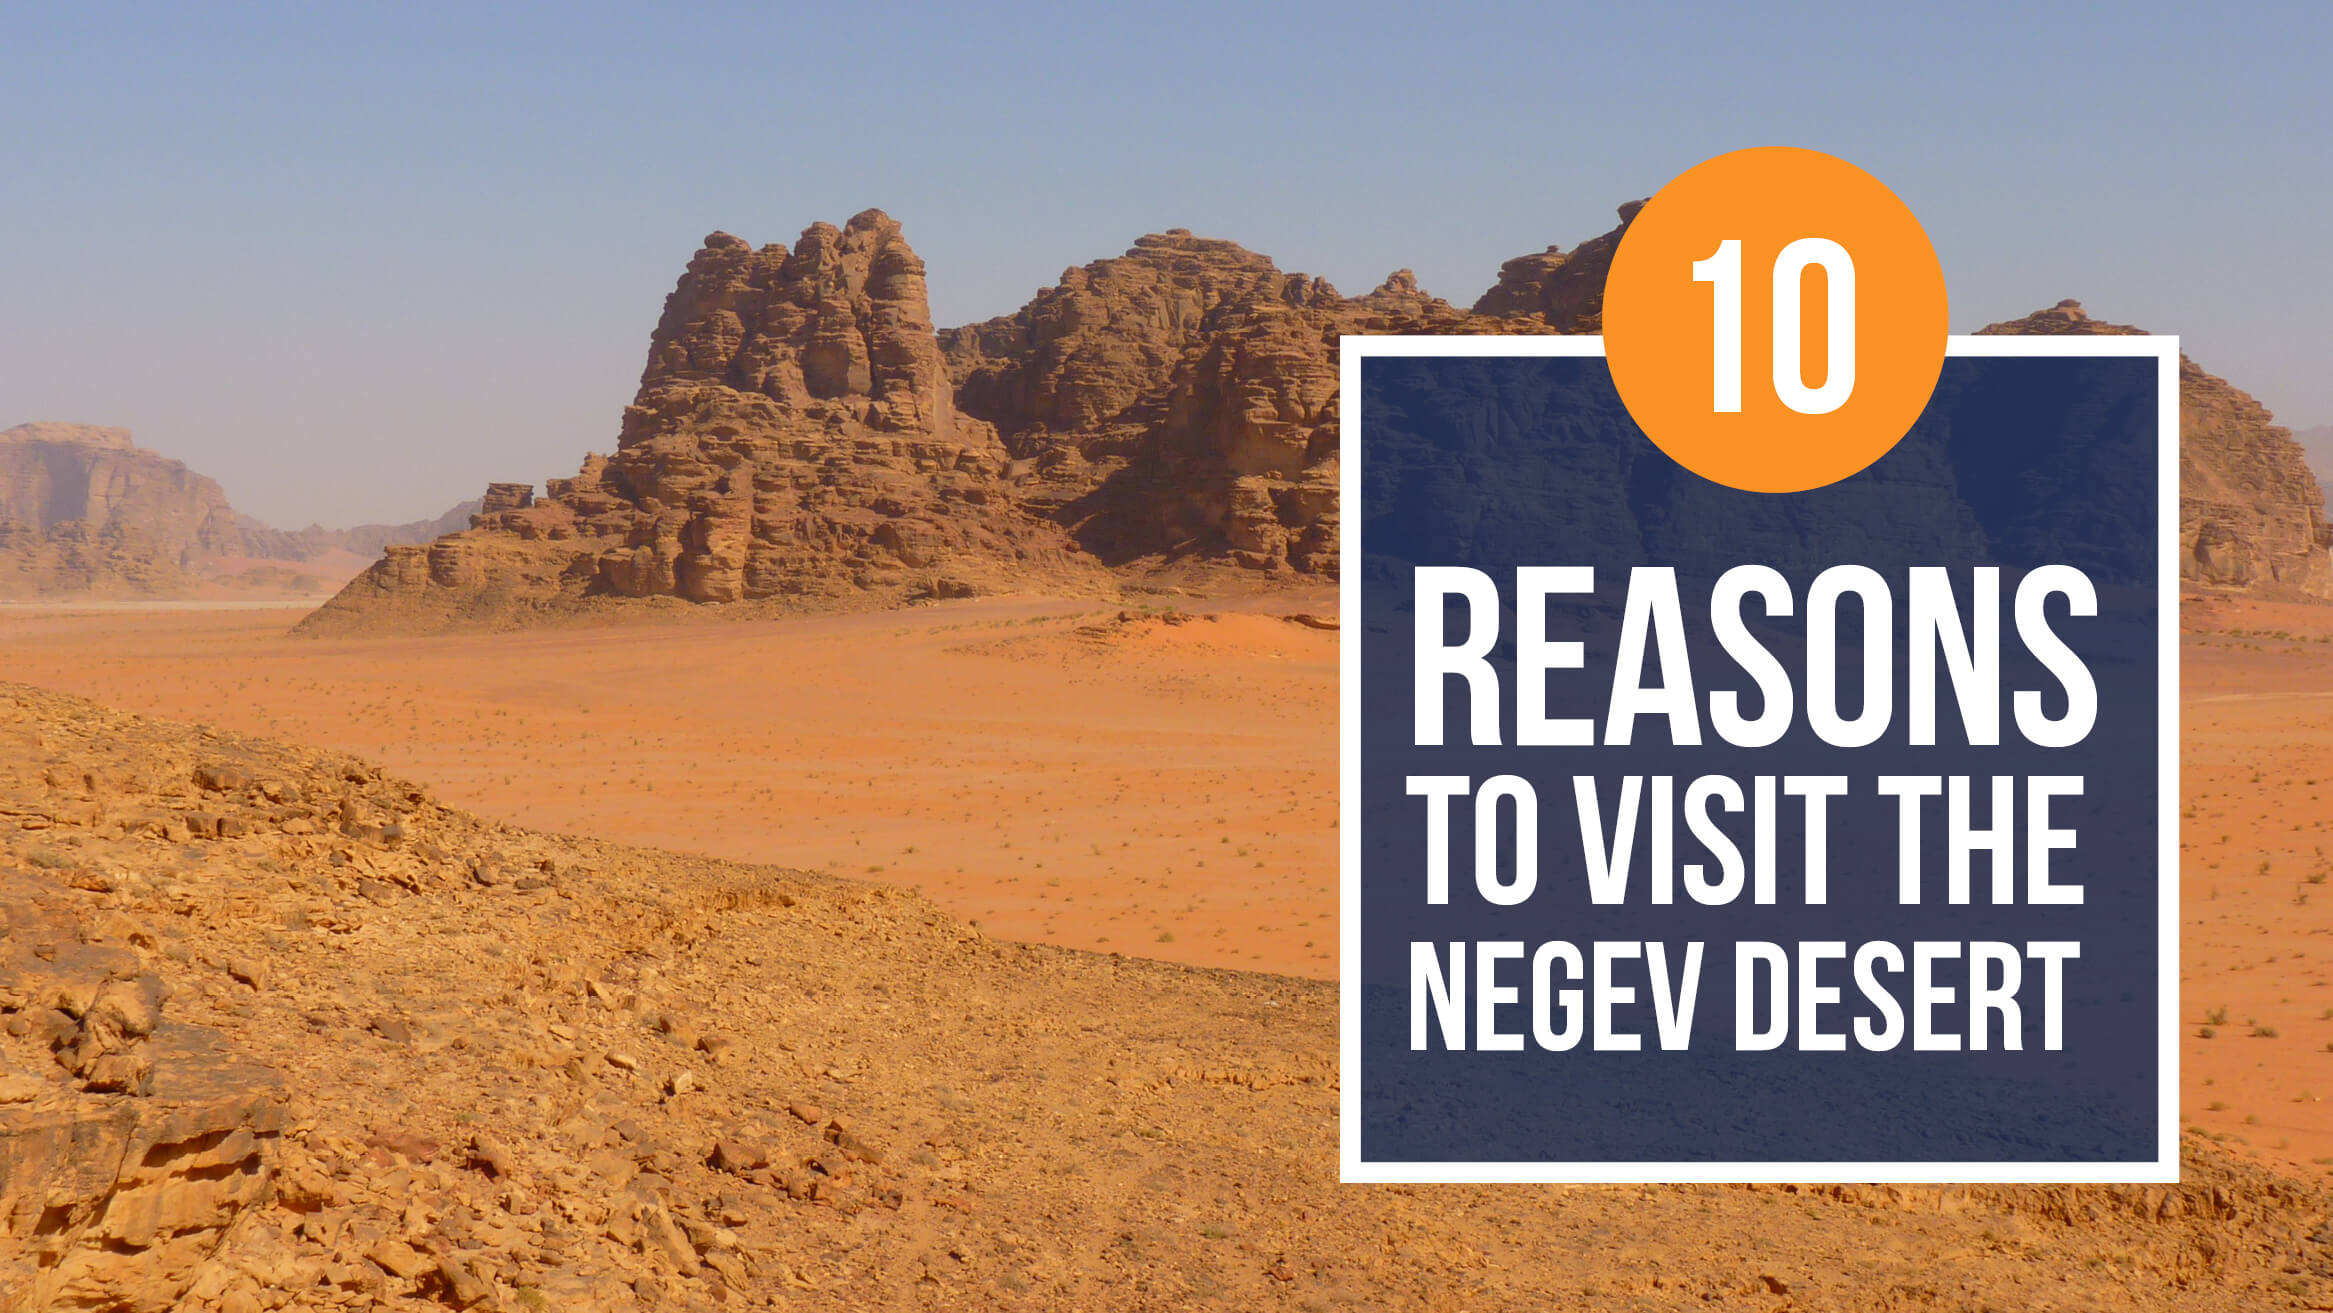 10 Reasons to Visit the Negev Desert